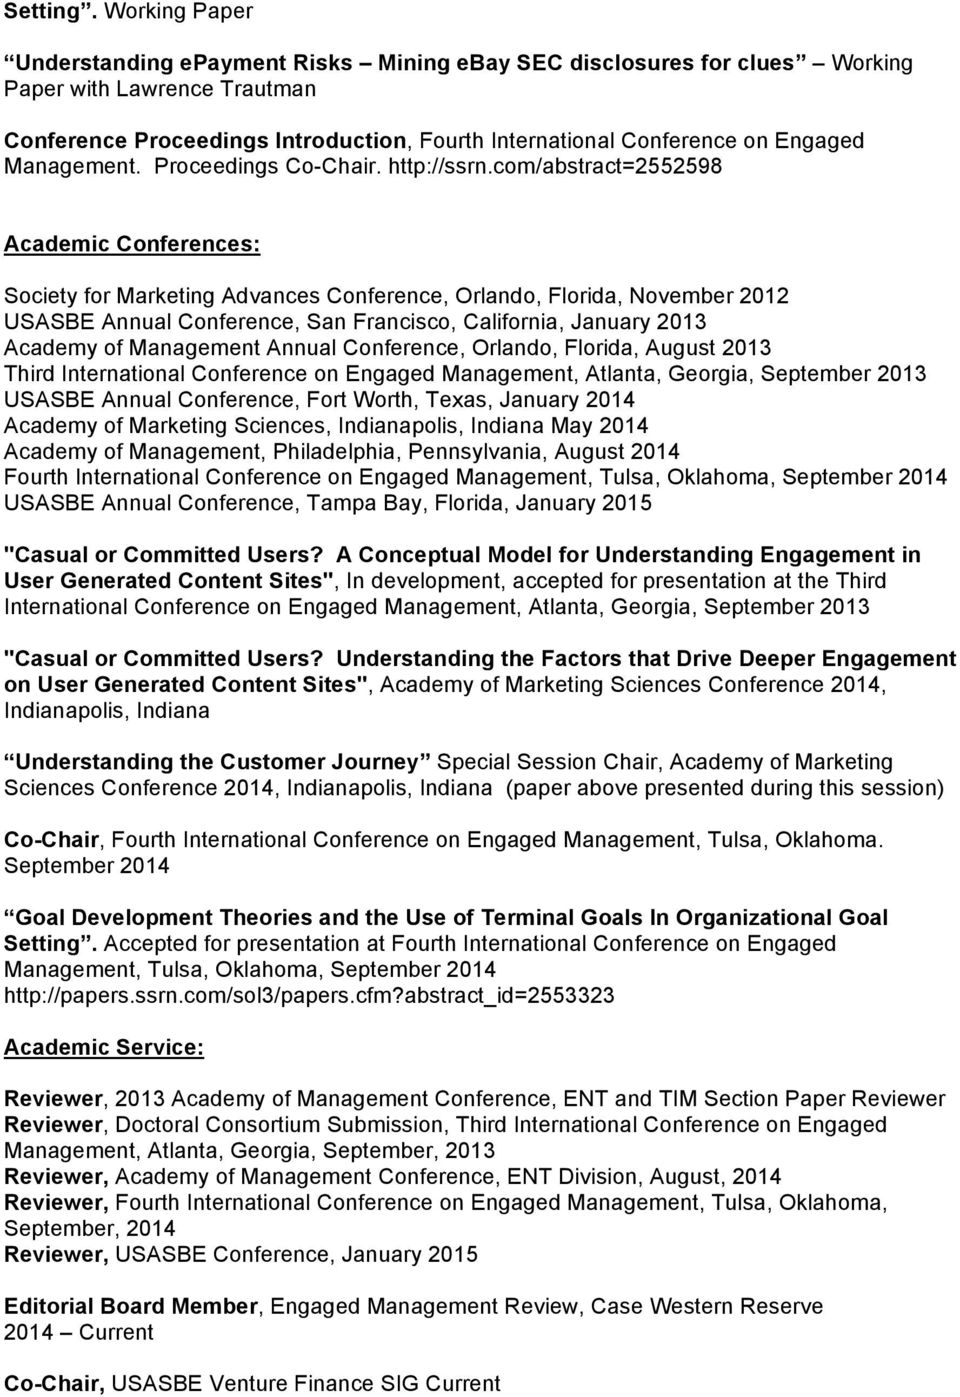 Management. Proceedings Co-Chair. http://ssrn.